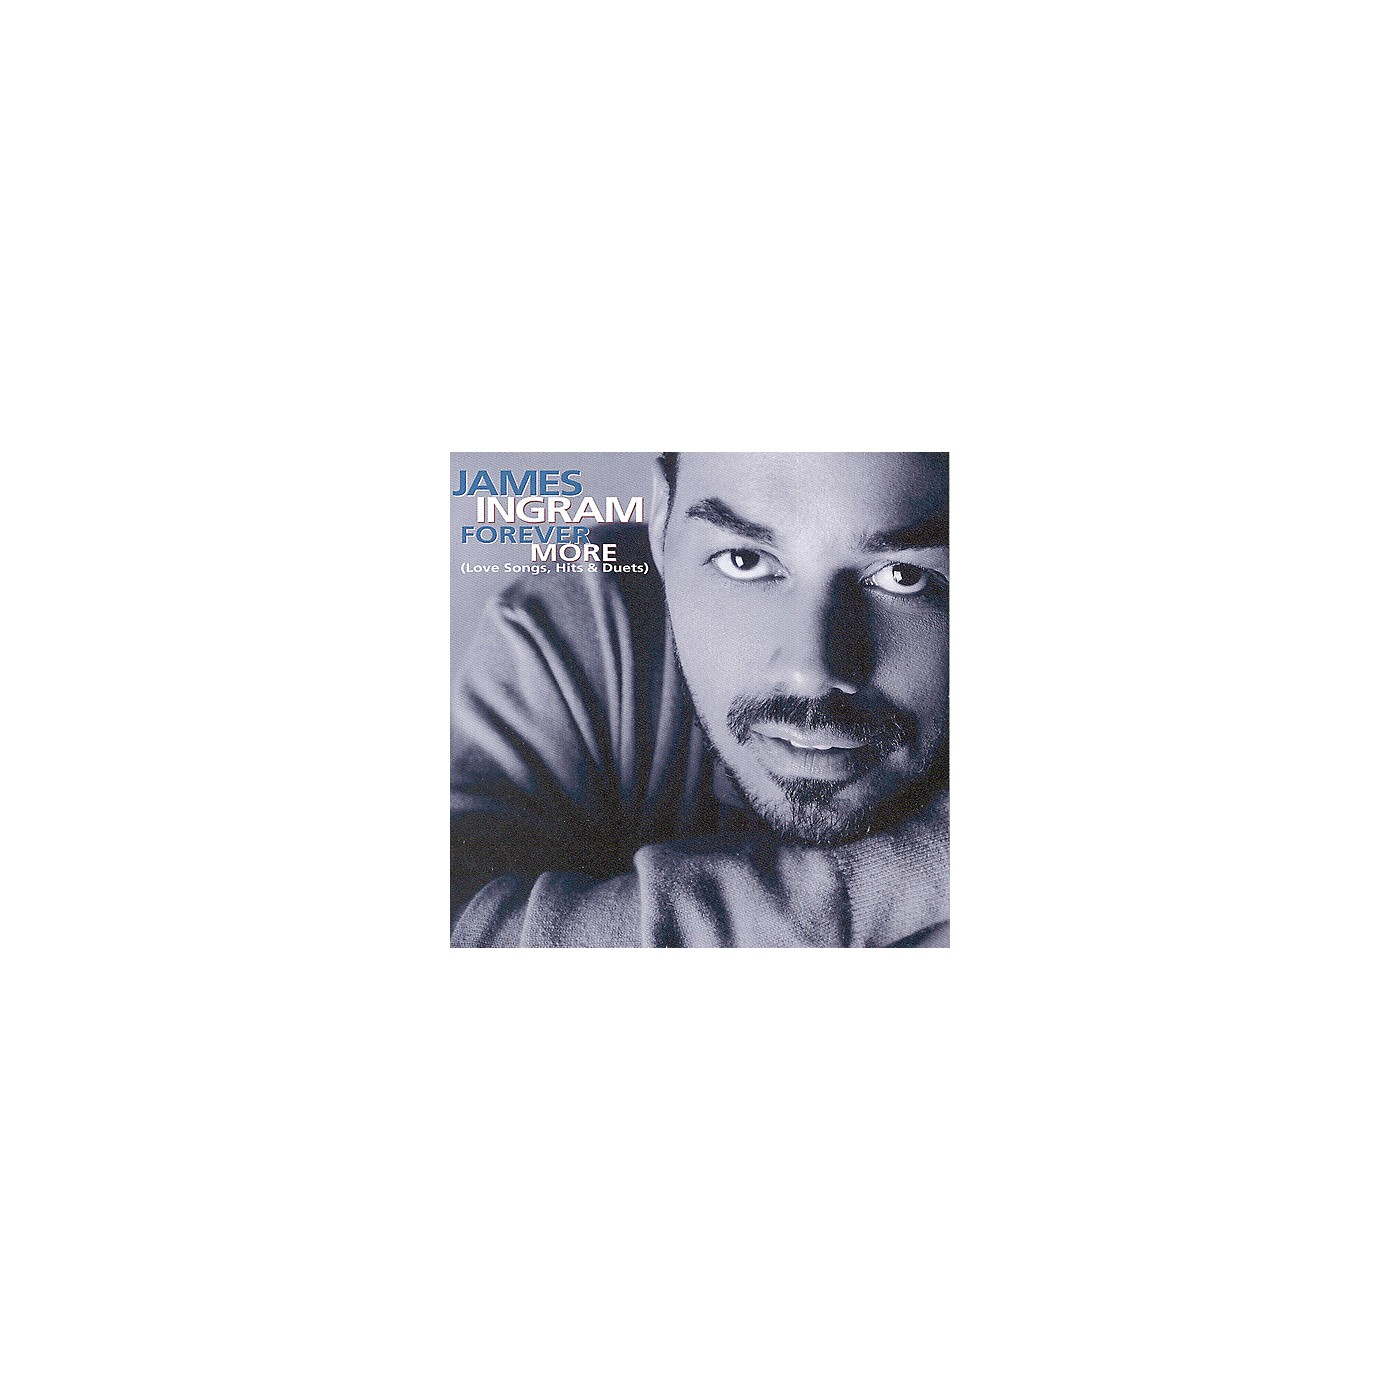 Alliance James Ingram - Forever More [Love Songs, Hits and Duets] (CD) thumbnail